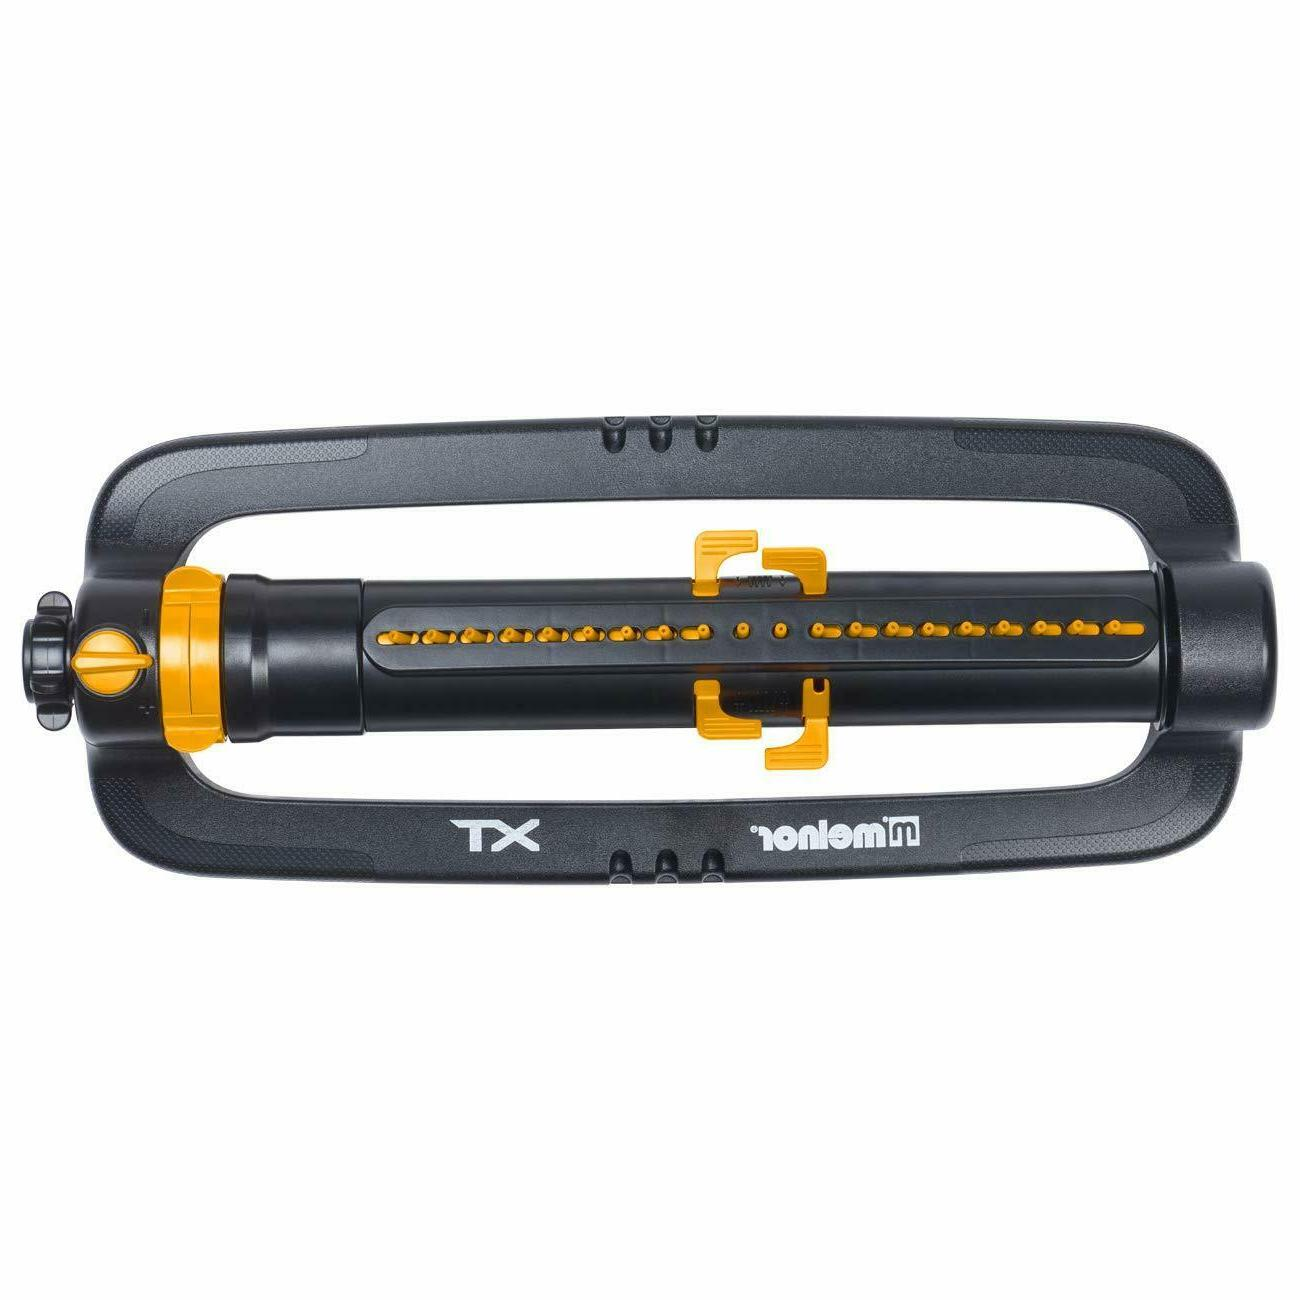 Melnor 65078-AMZ XT Turbo Oscillating Sprinkler 3-Way Adjustment